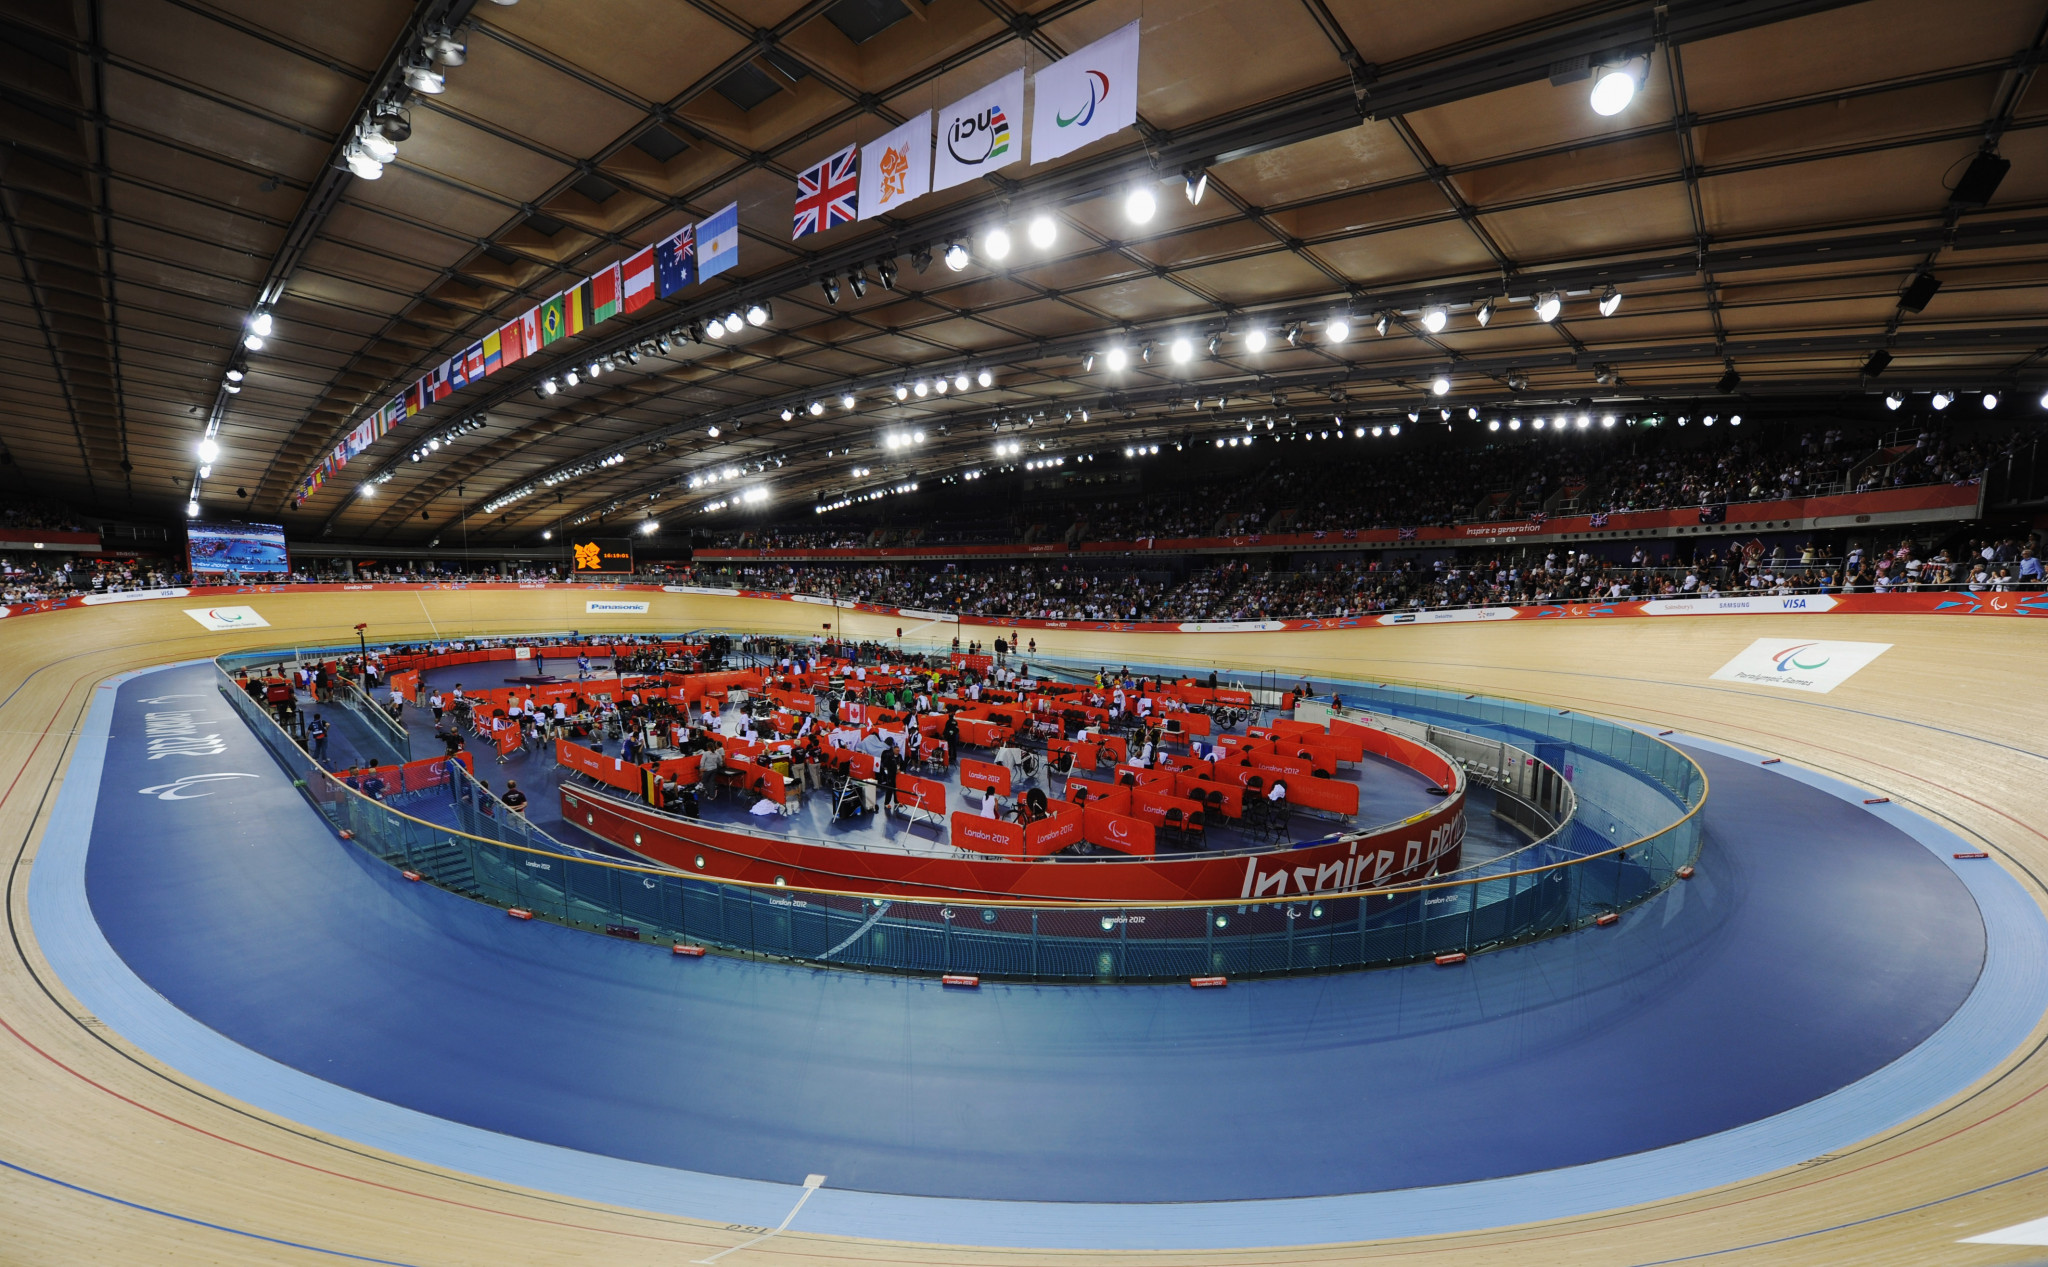 Track cycling will be held outside of Birmingham at the 2022 Commonwealth Games ©ITG